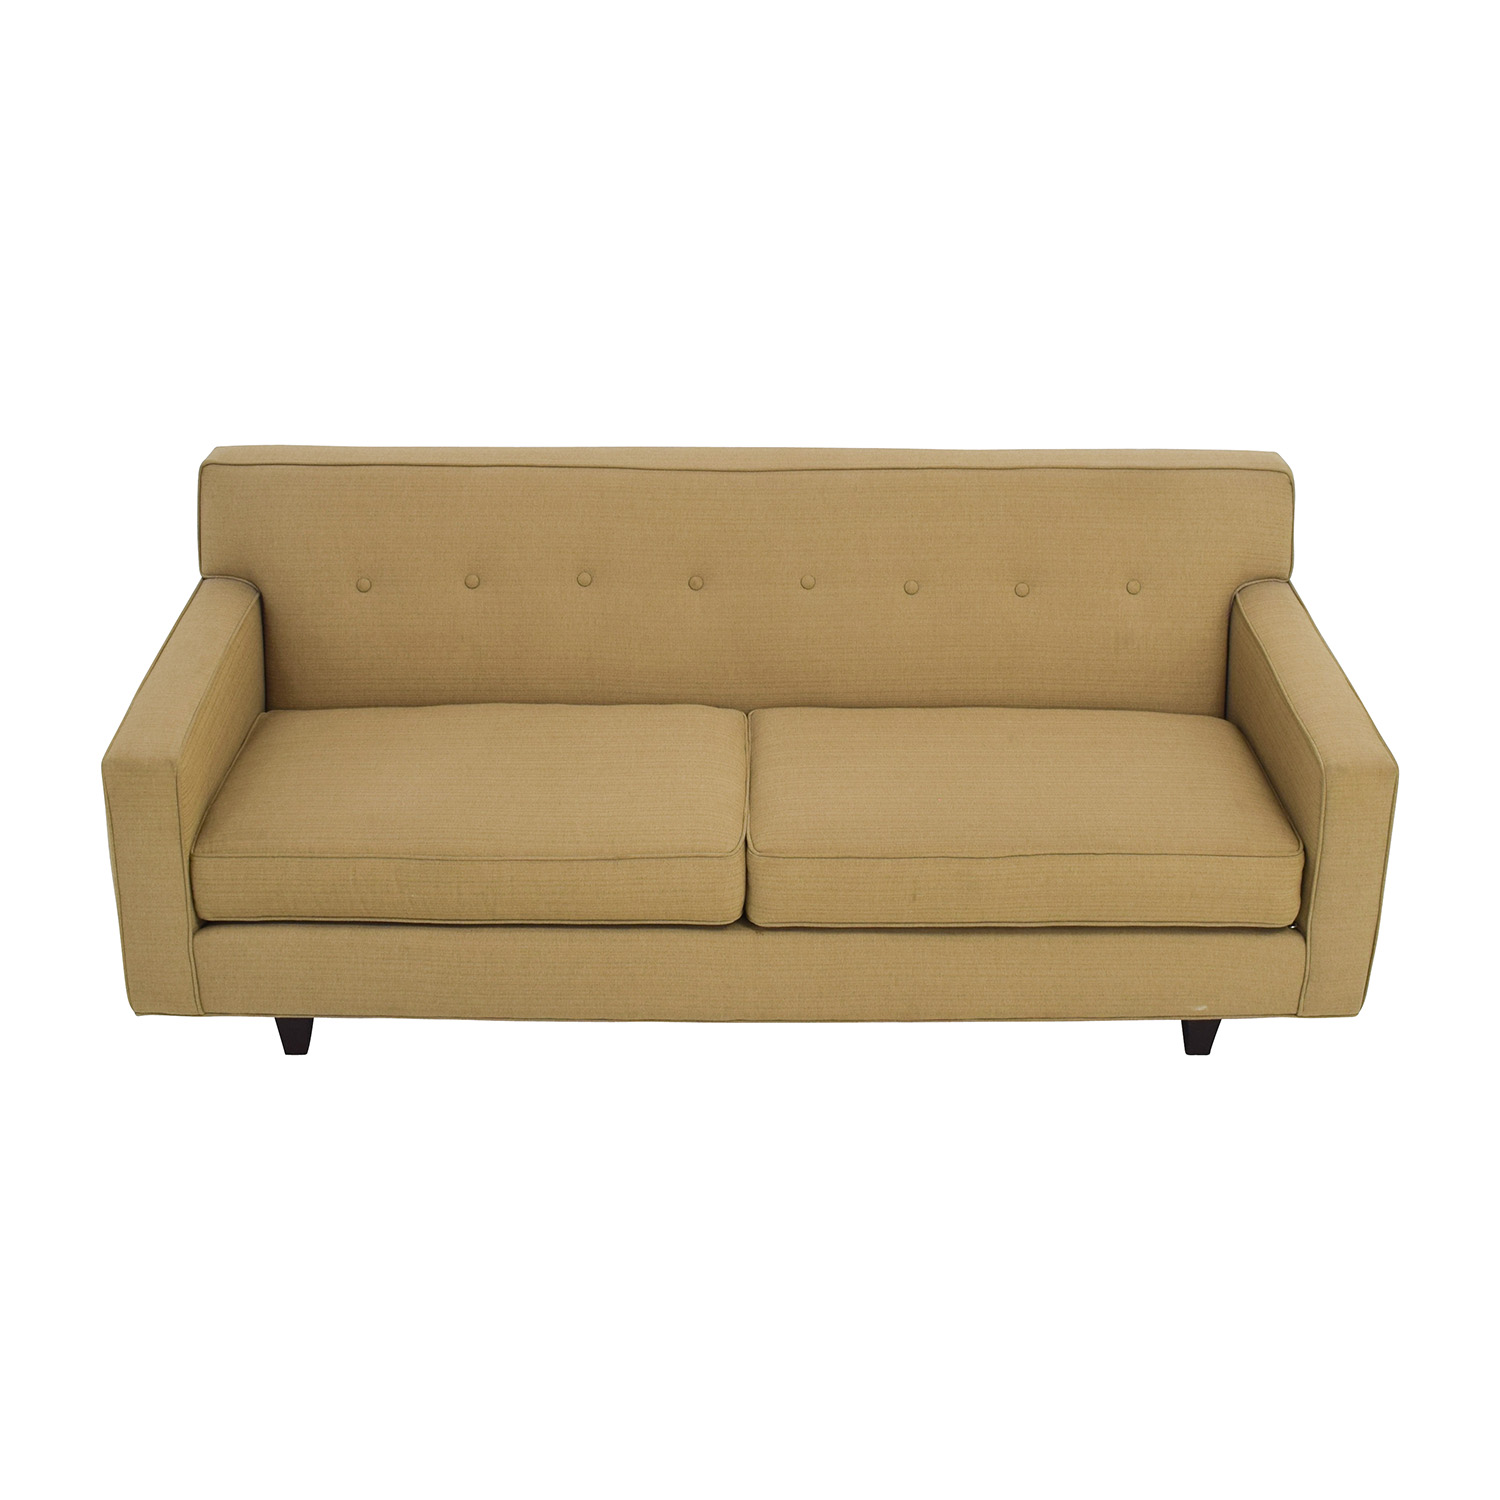 Rowe Furniture Contemporary Dorset Oatmeal Sofa Rowe Furniture